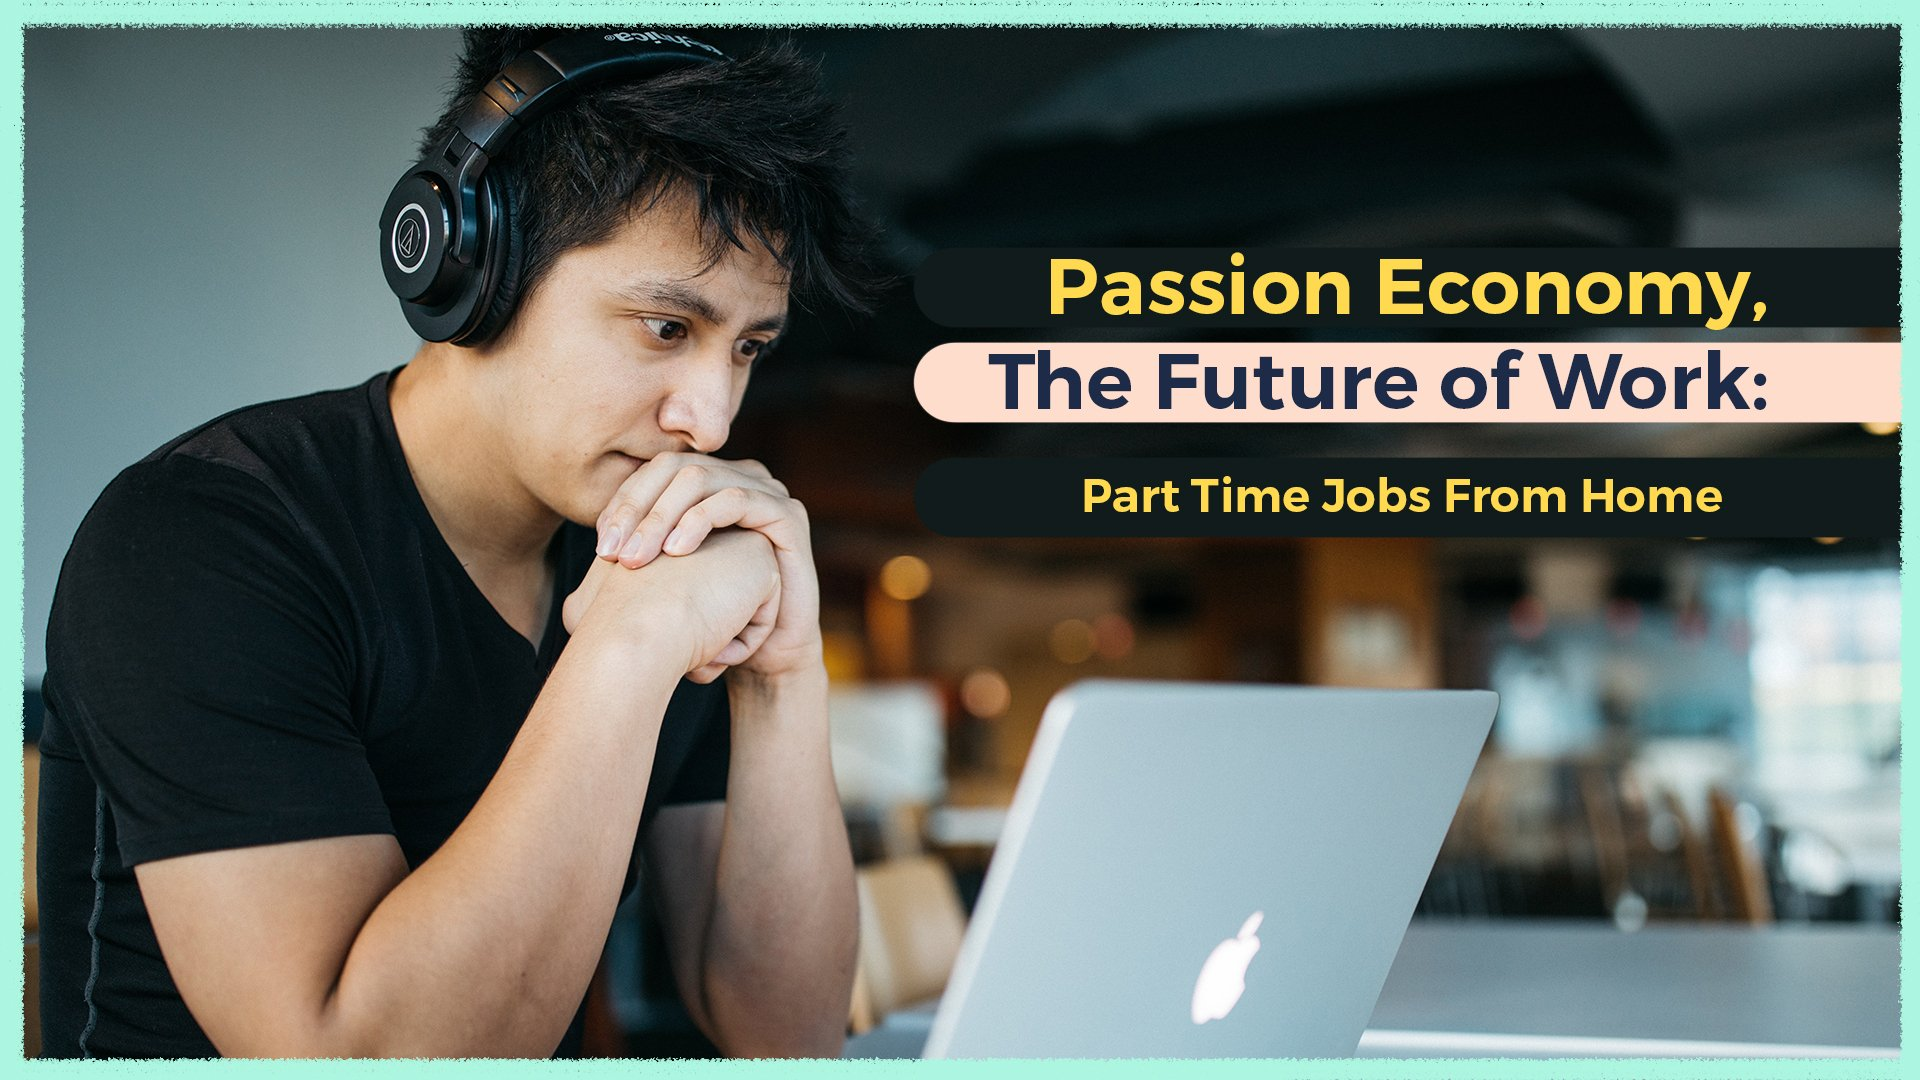 part time jobs from home, online jobs in India, work from home jobs part time